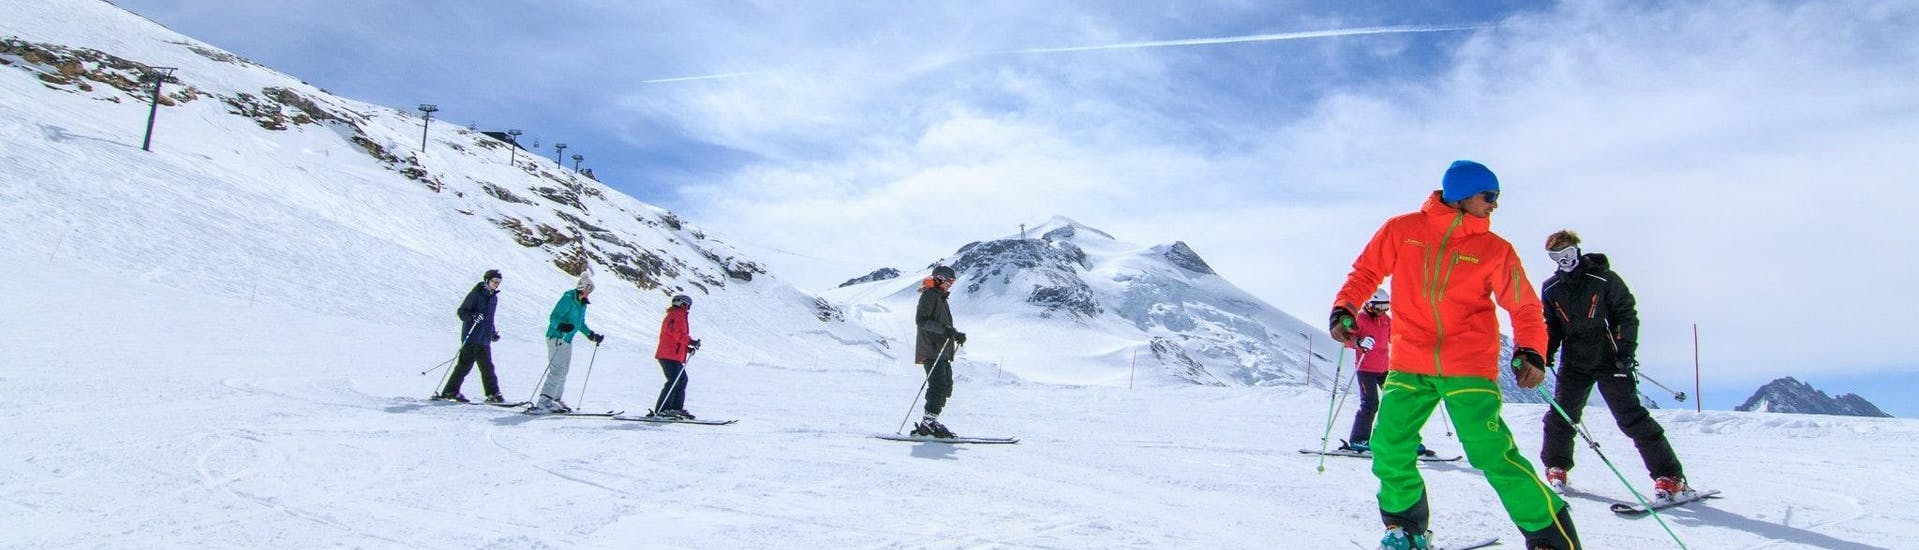 Skiers are following their instructor from the ski school Evolution 2 Tignes on a snowy slope during theirSki Lessons for Teens & Adults - Morning - All Levels.